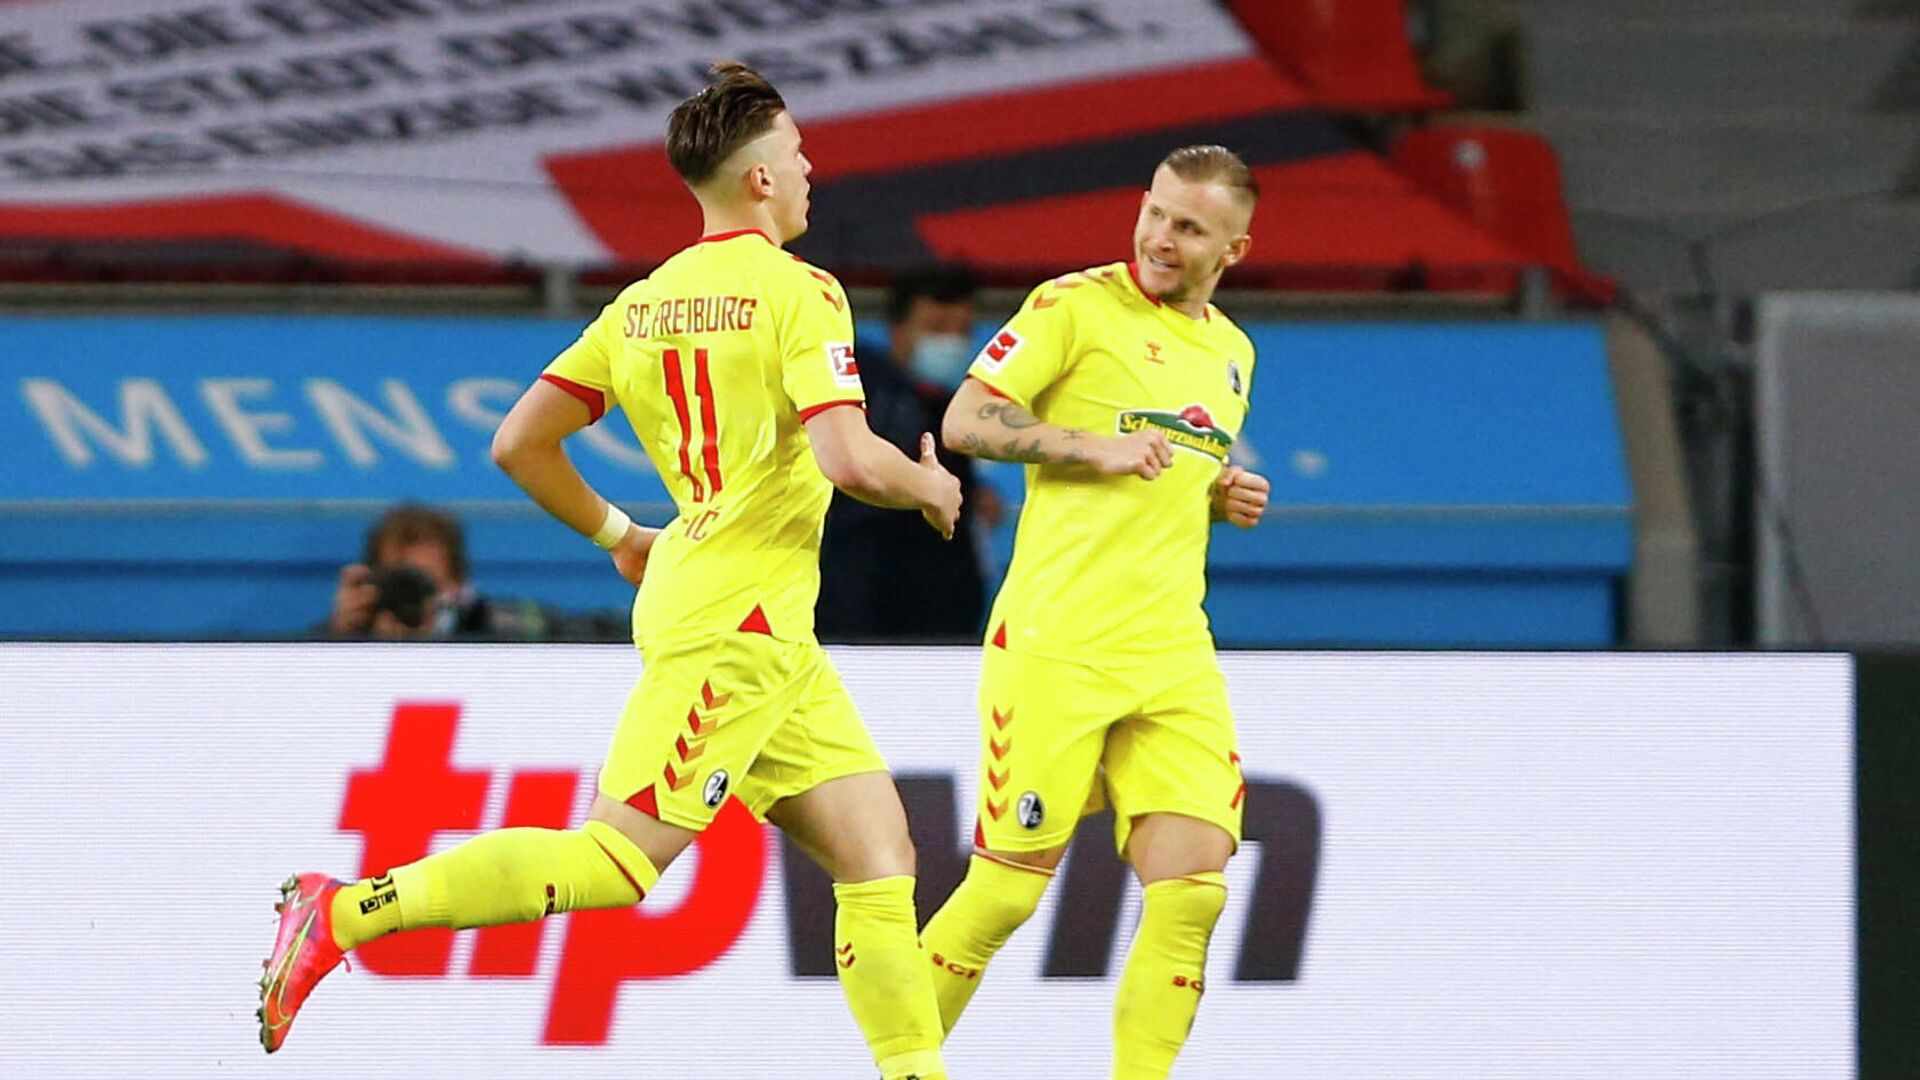 SC Freiburg's Ermedin Demirovic (L) celebrates scoring their first goal with Jonathan Schmid (R) during the German first division Bundesliga football match between Bayer 04 Leverkusen and FC Freiburg in Leverkusen, western Germany, on February 28, 2021. (Photo by THILO SCHMUELGEN / POOL / AFP) / DFL REGULATIONS PROHIBIT ANY USE OF PHOTOGRAPHS AS IMAGE SEQUENCES AND/OR QUASI-VIDEO - РИА Новости, 1920, 28.02.2021